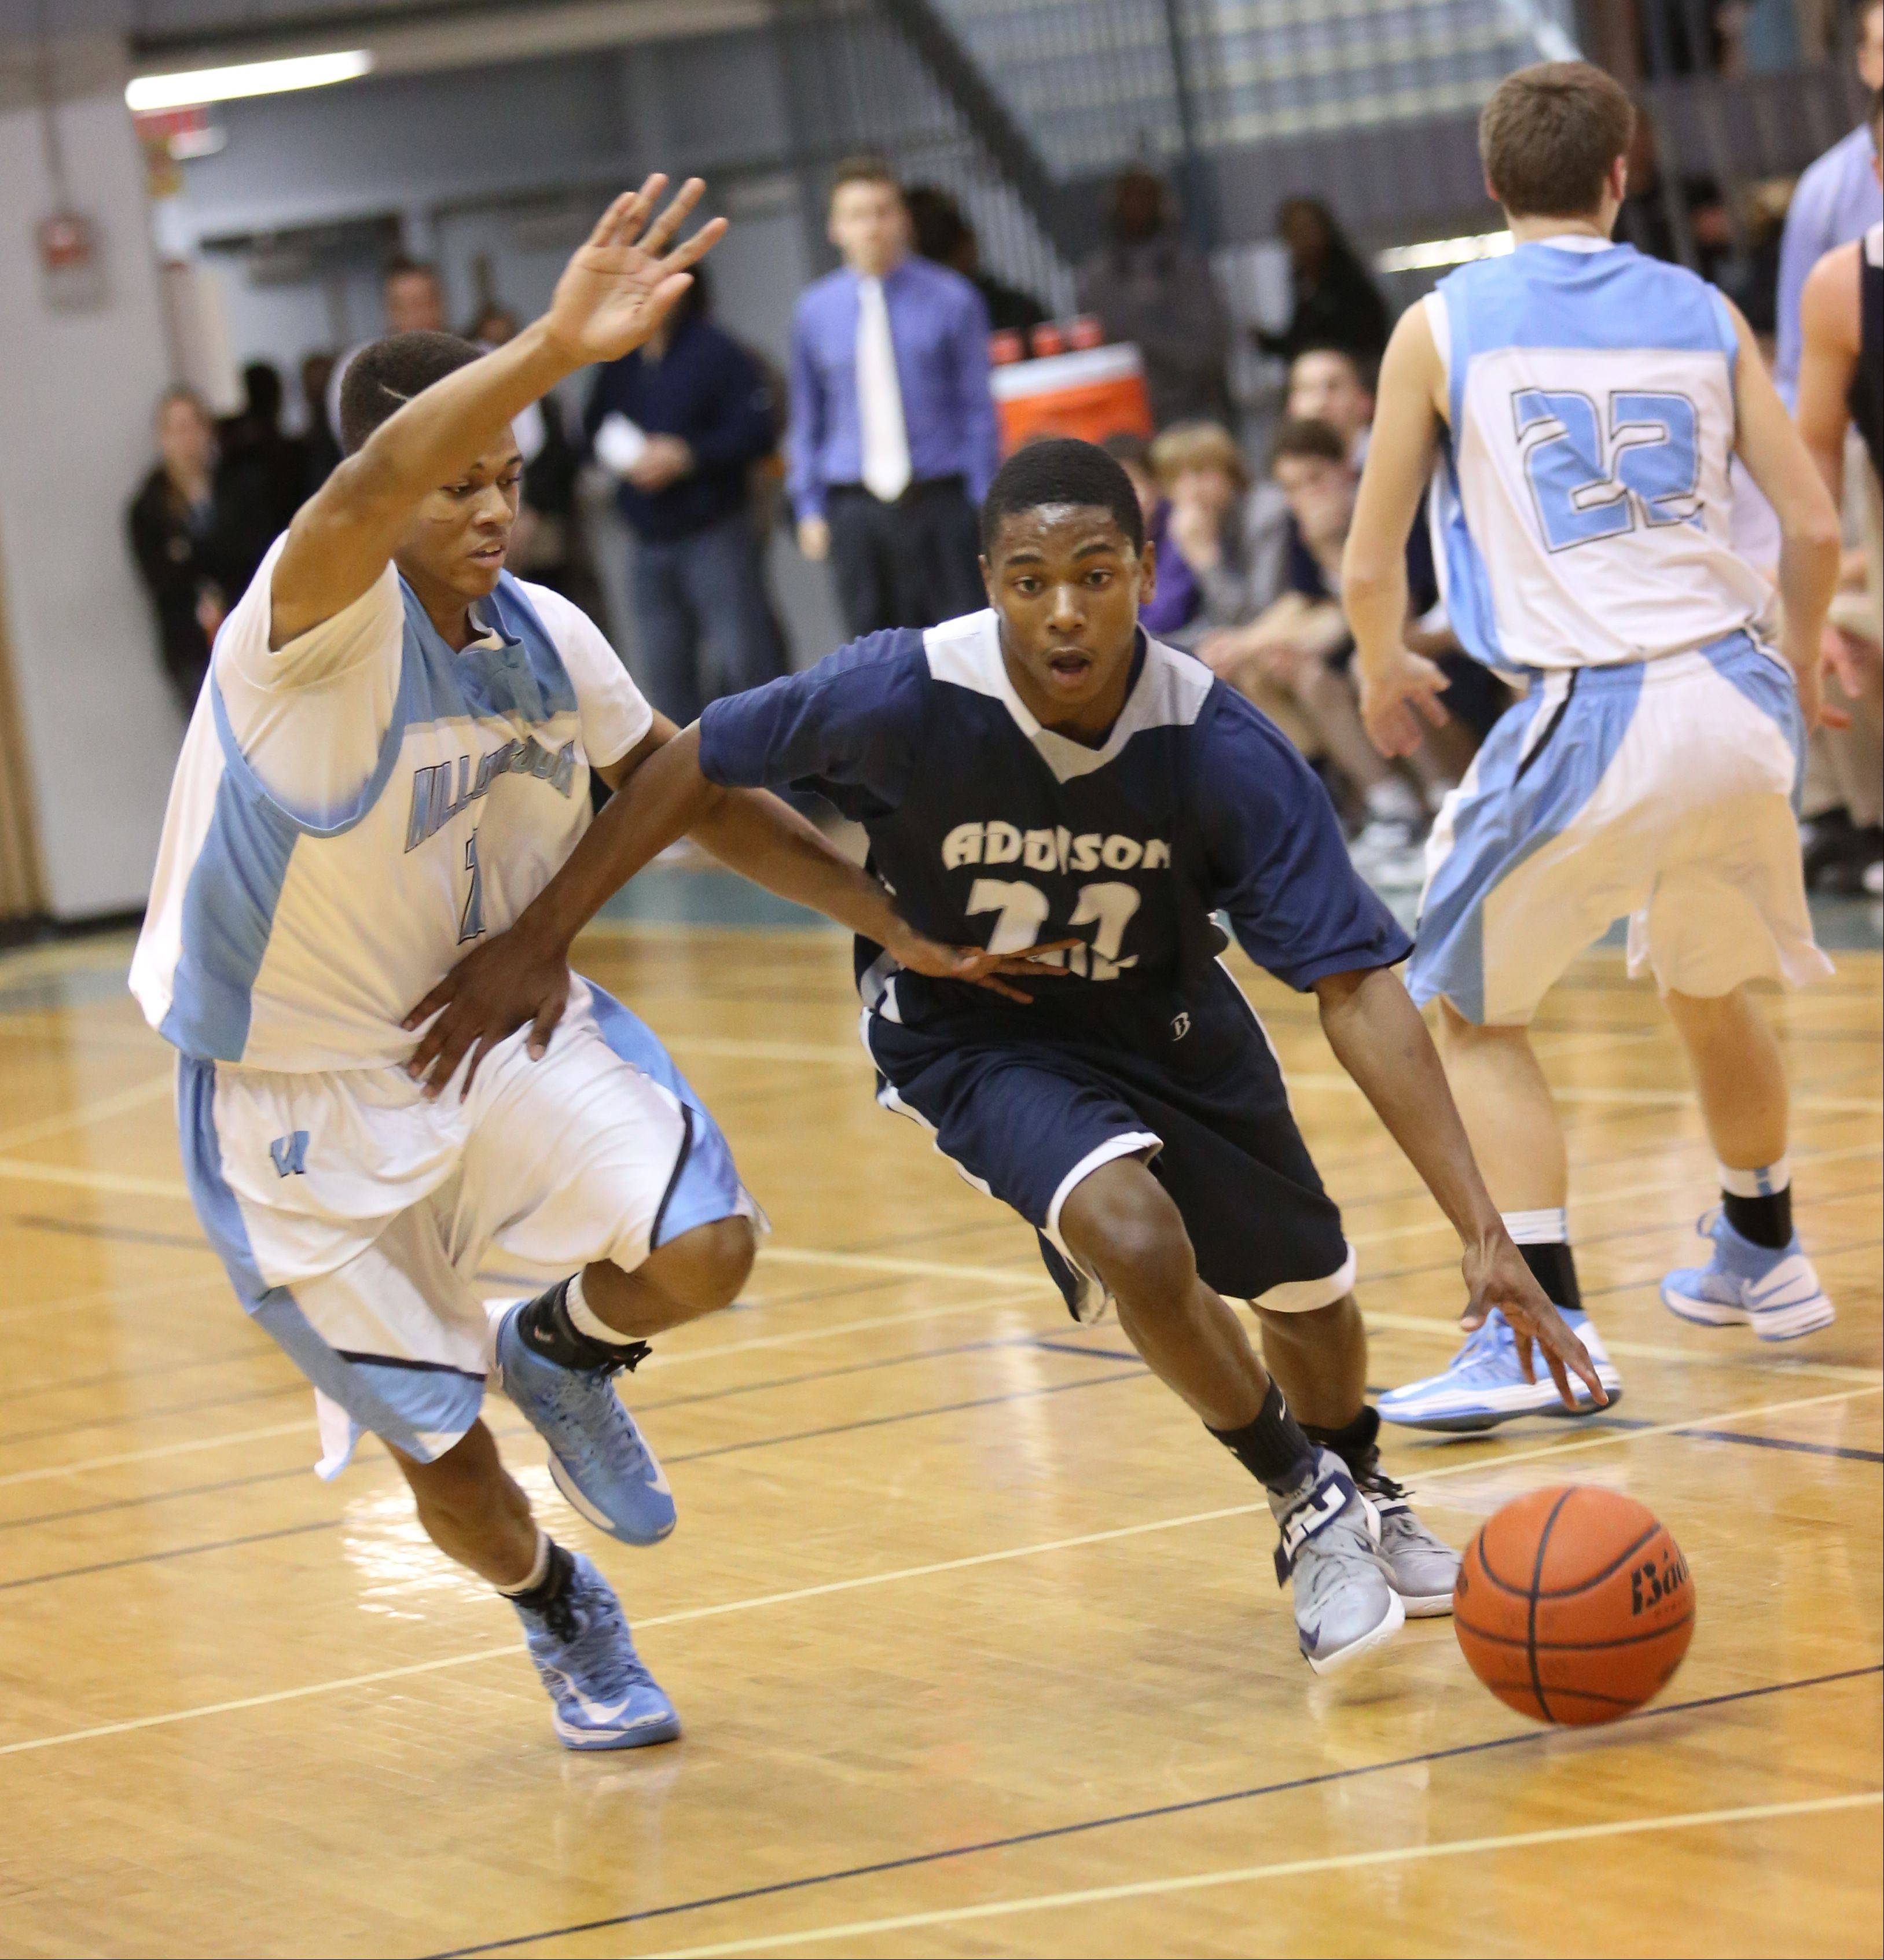 Images: Addison Trail vs. Willowbrook, boys basketball